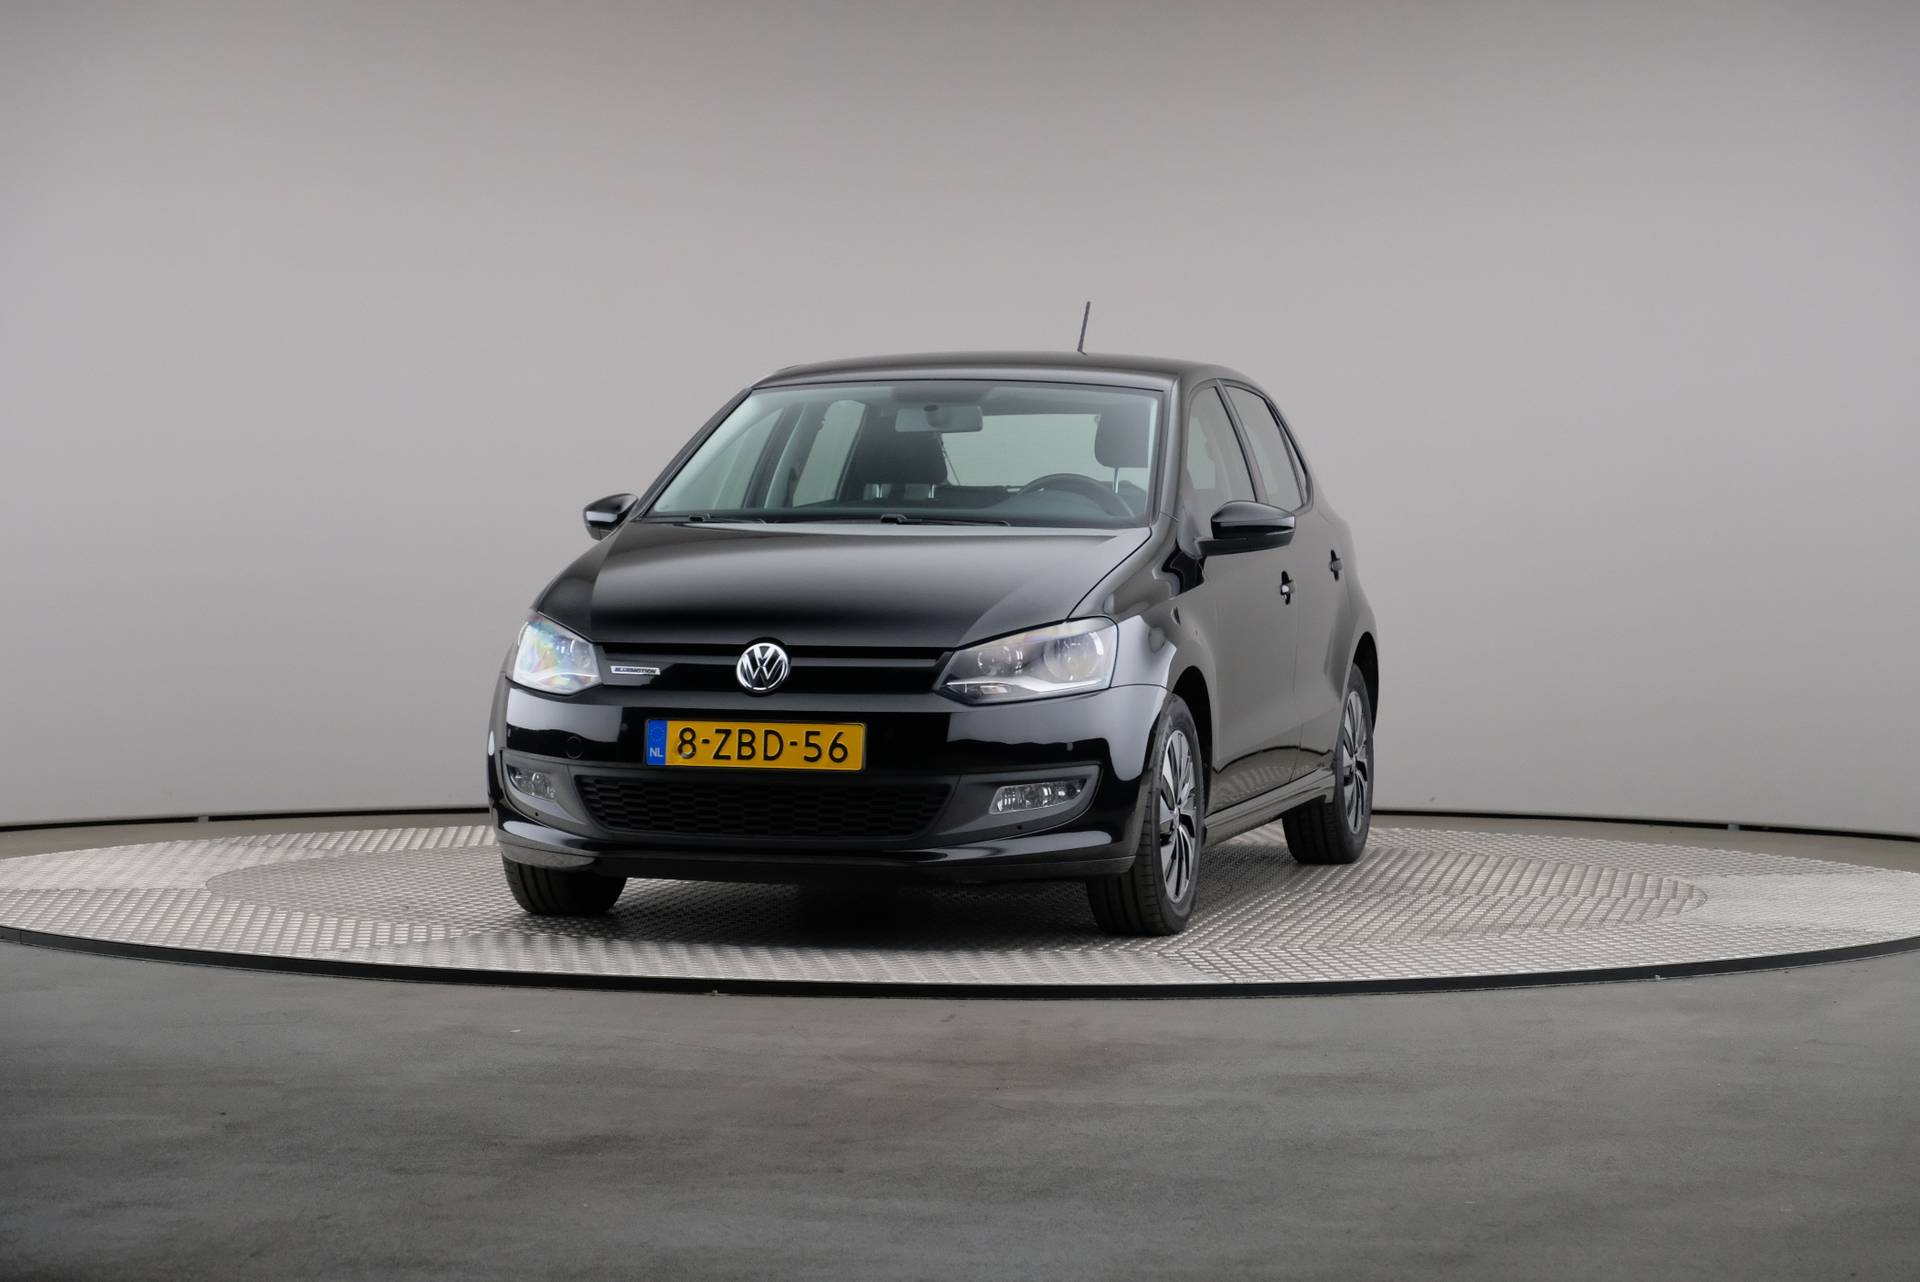 Volkswagen Polo 1.4 TDI BlueMotion, Executive, Airco, Navigatie, 360-image34